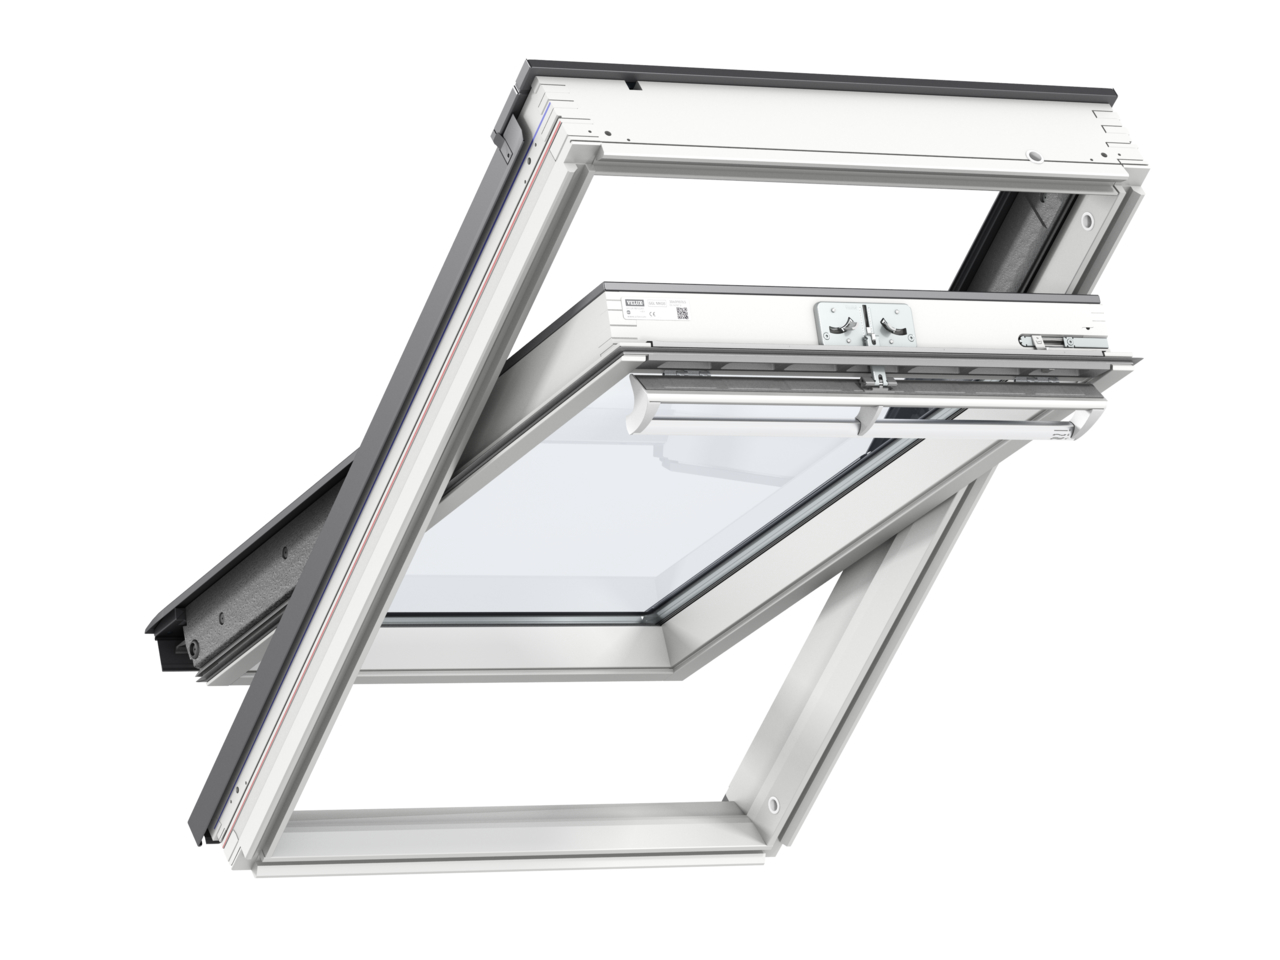 Velux GGL MK04 780 x 980mm Centre Pivot Standard 70Pane Roof Window - White Painted